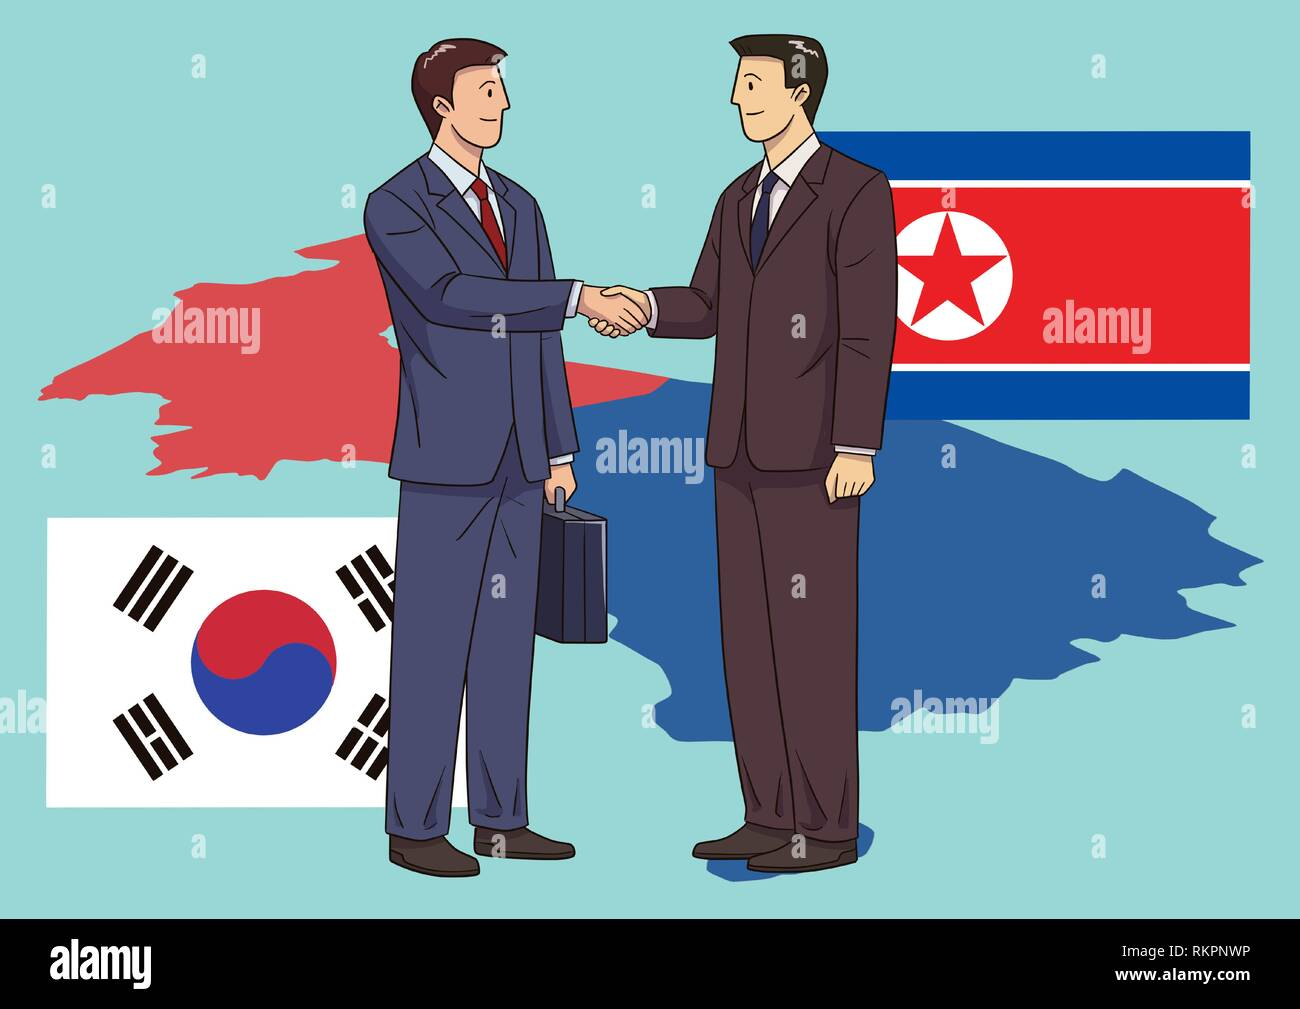 Diplomacy and trade War, international trade concept vector illustration 010 - Stock Image